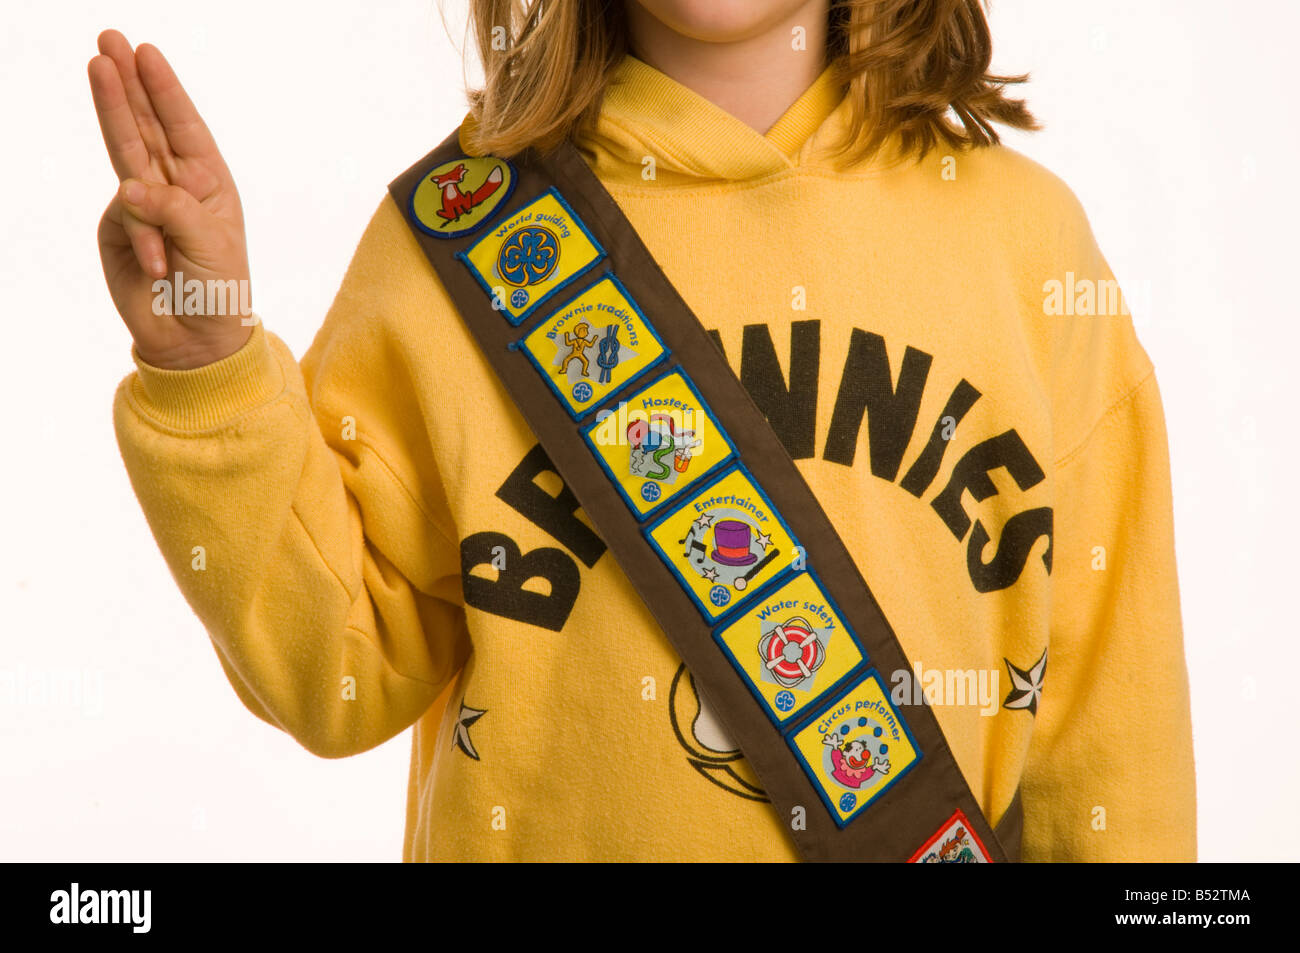 10 year old girl dressed in Brownies uniform showing her collection of merit badges for completing tasks and acquiring - Stock Image